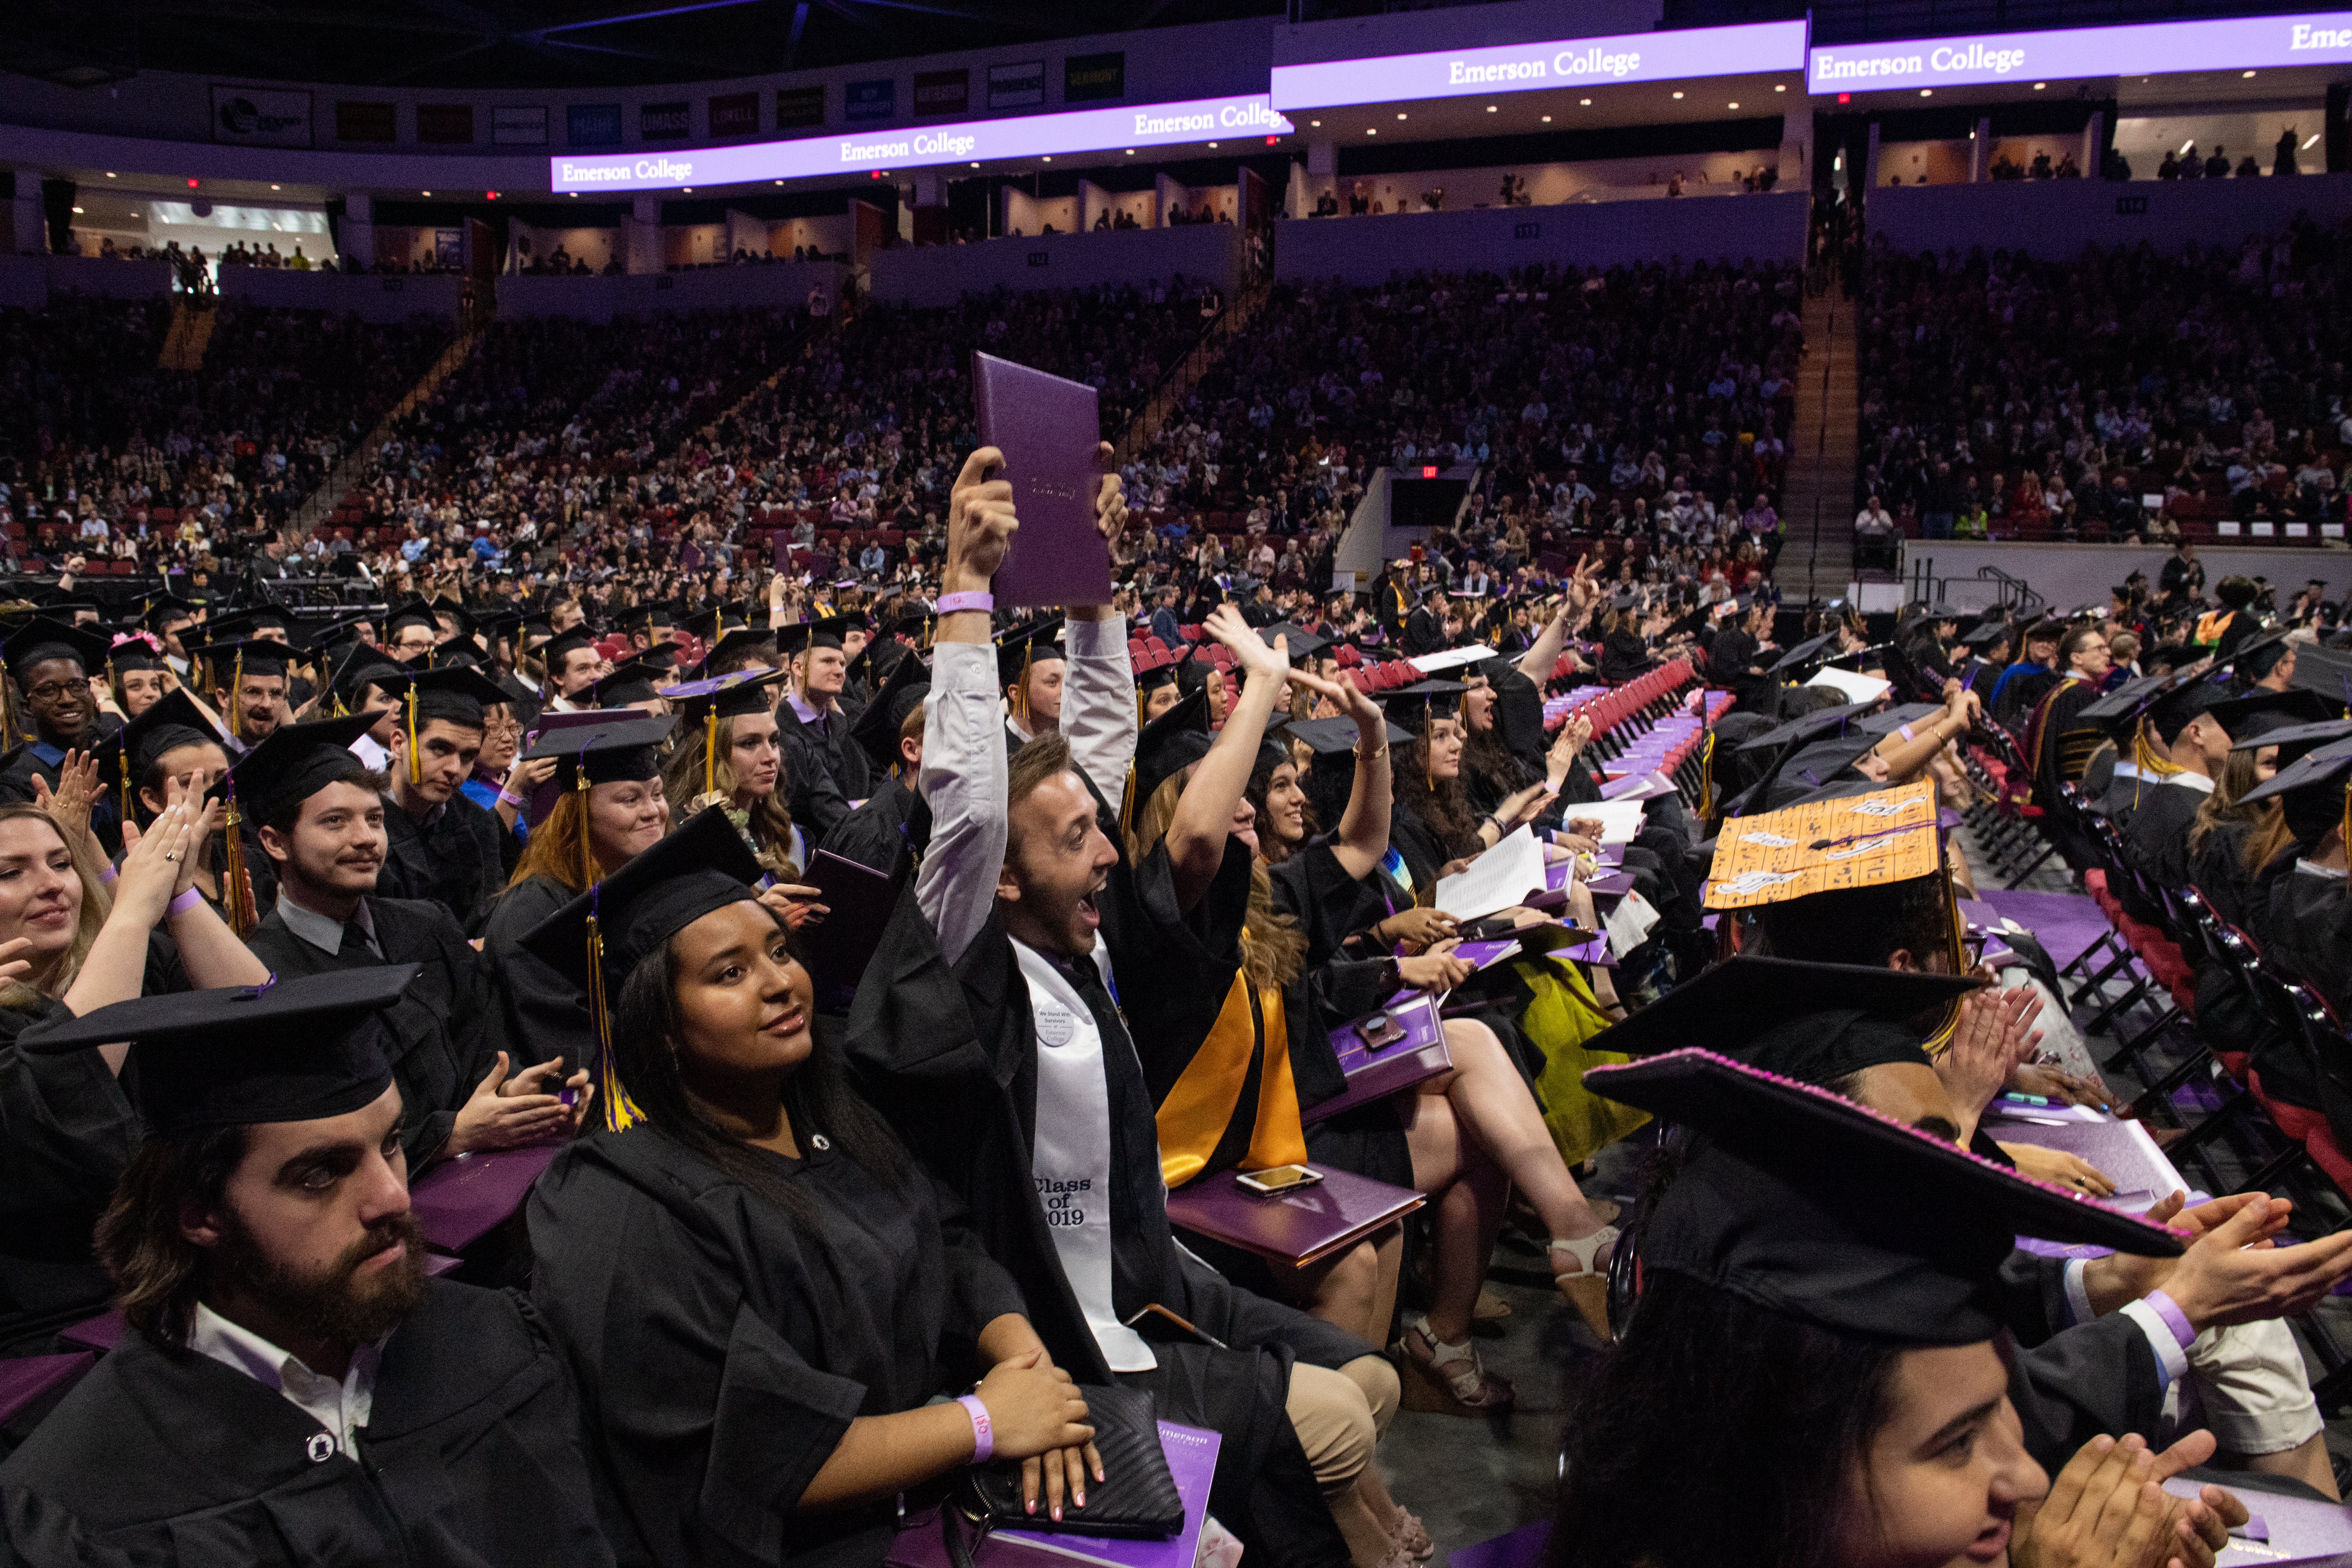 Emerson College 2019 Commencement